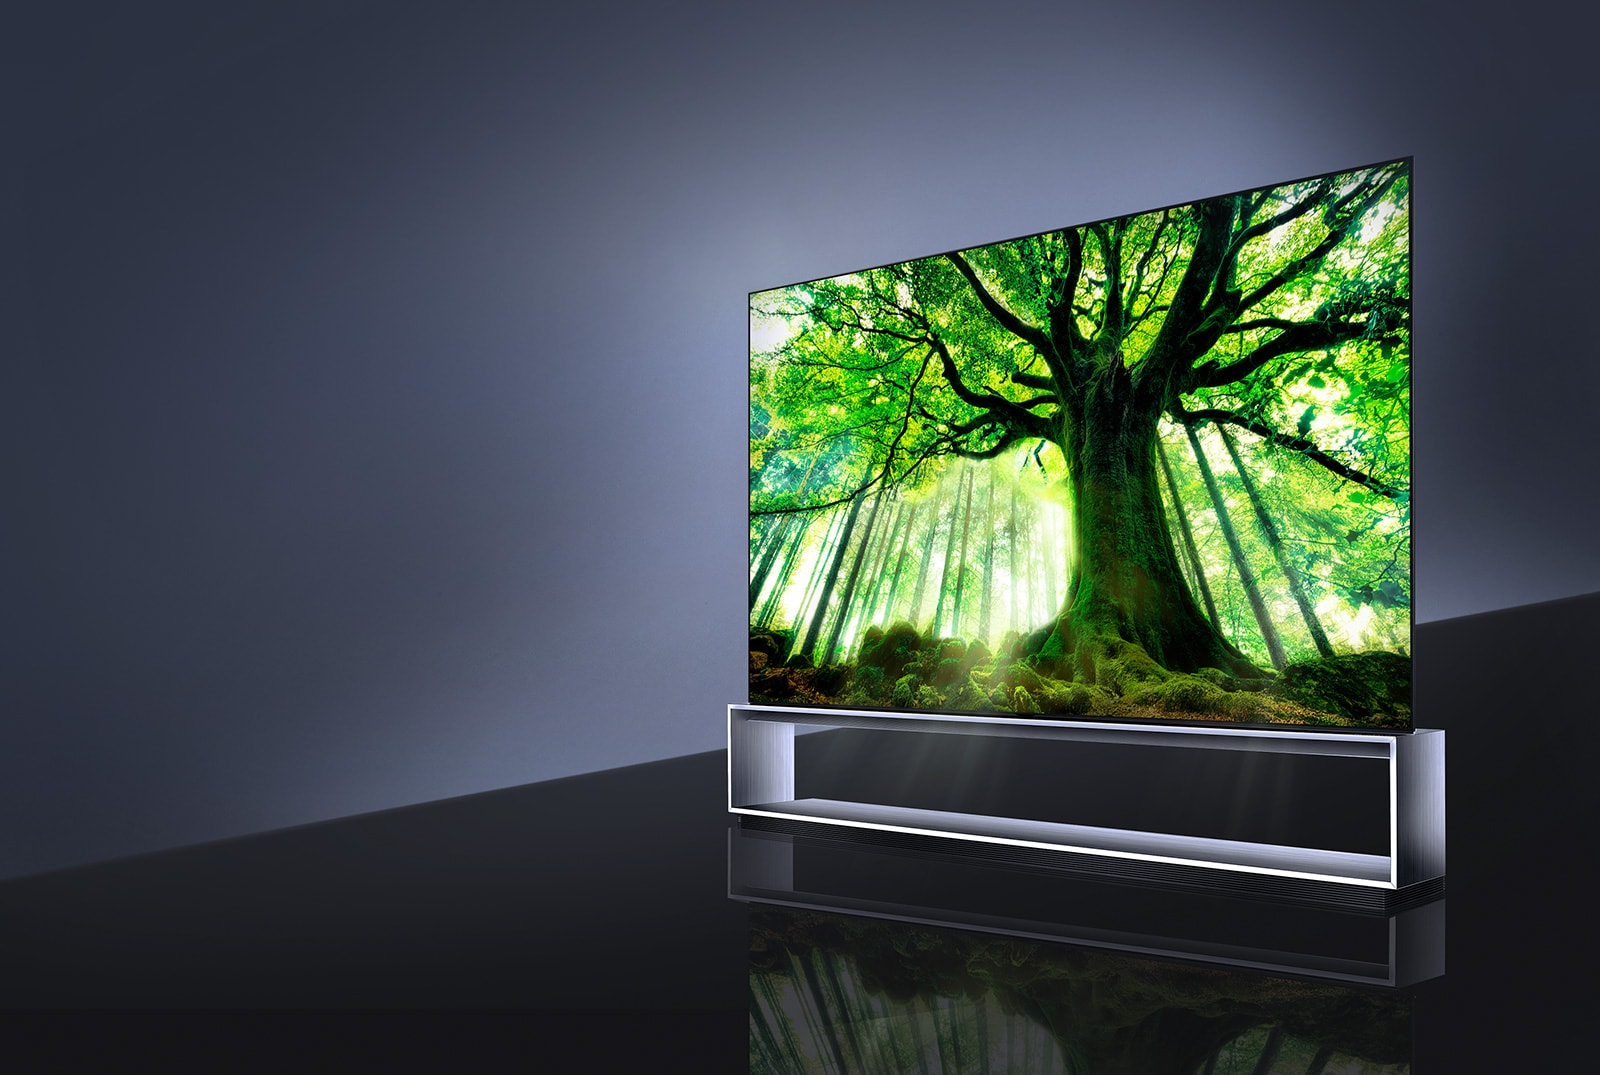 Side view of LG SIGNATURE OLED TV Z9 with the screen filled with a big tree